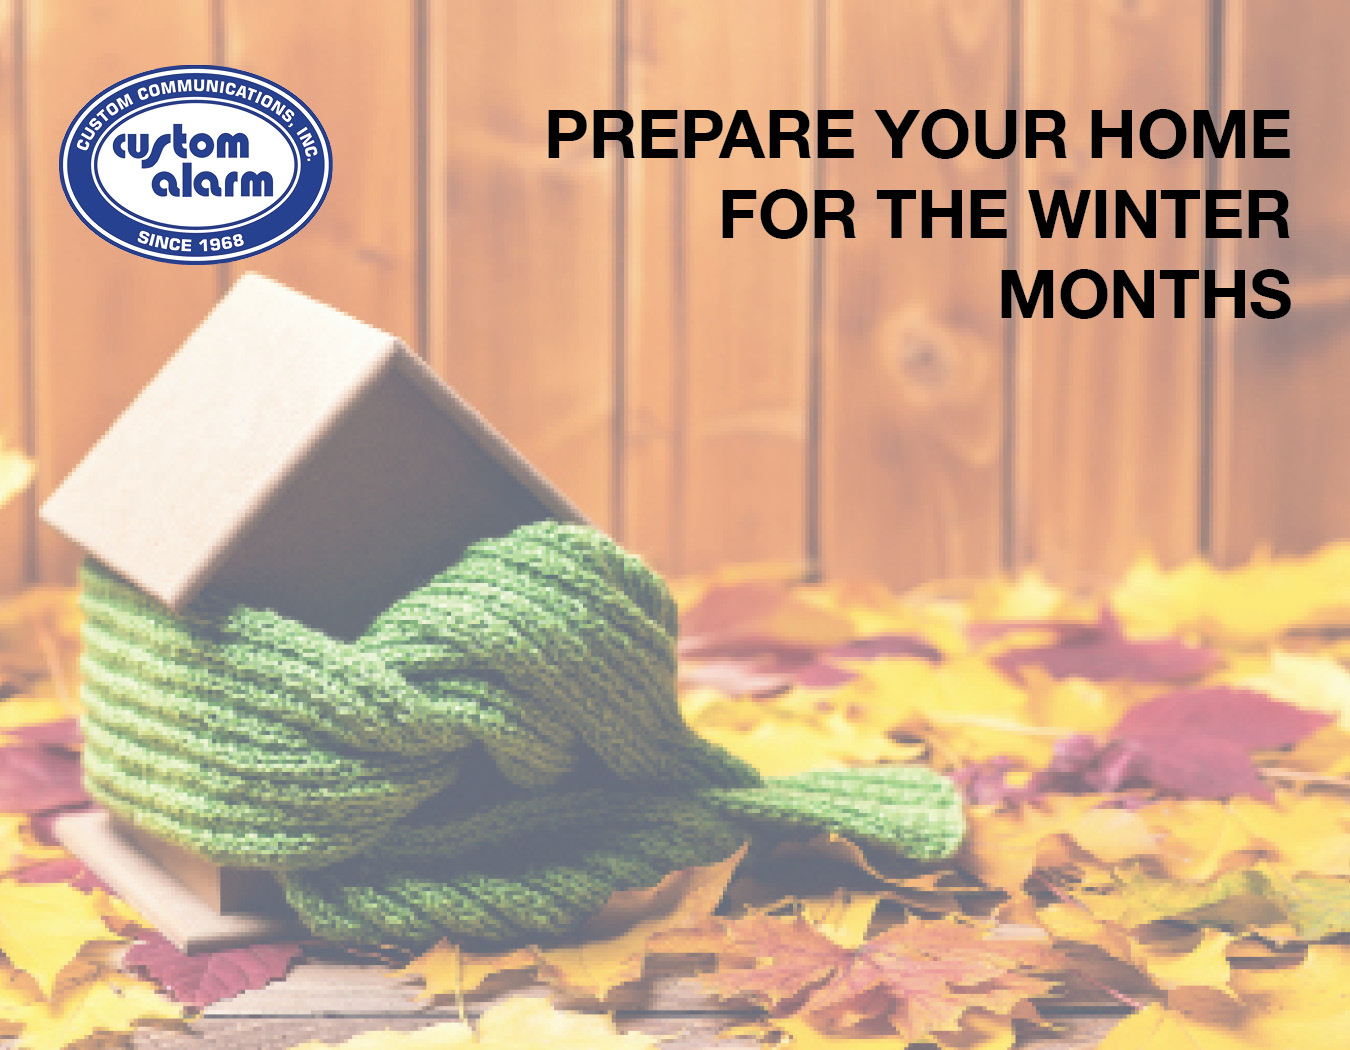 prepare home for winter months